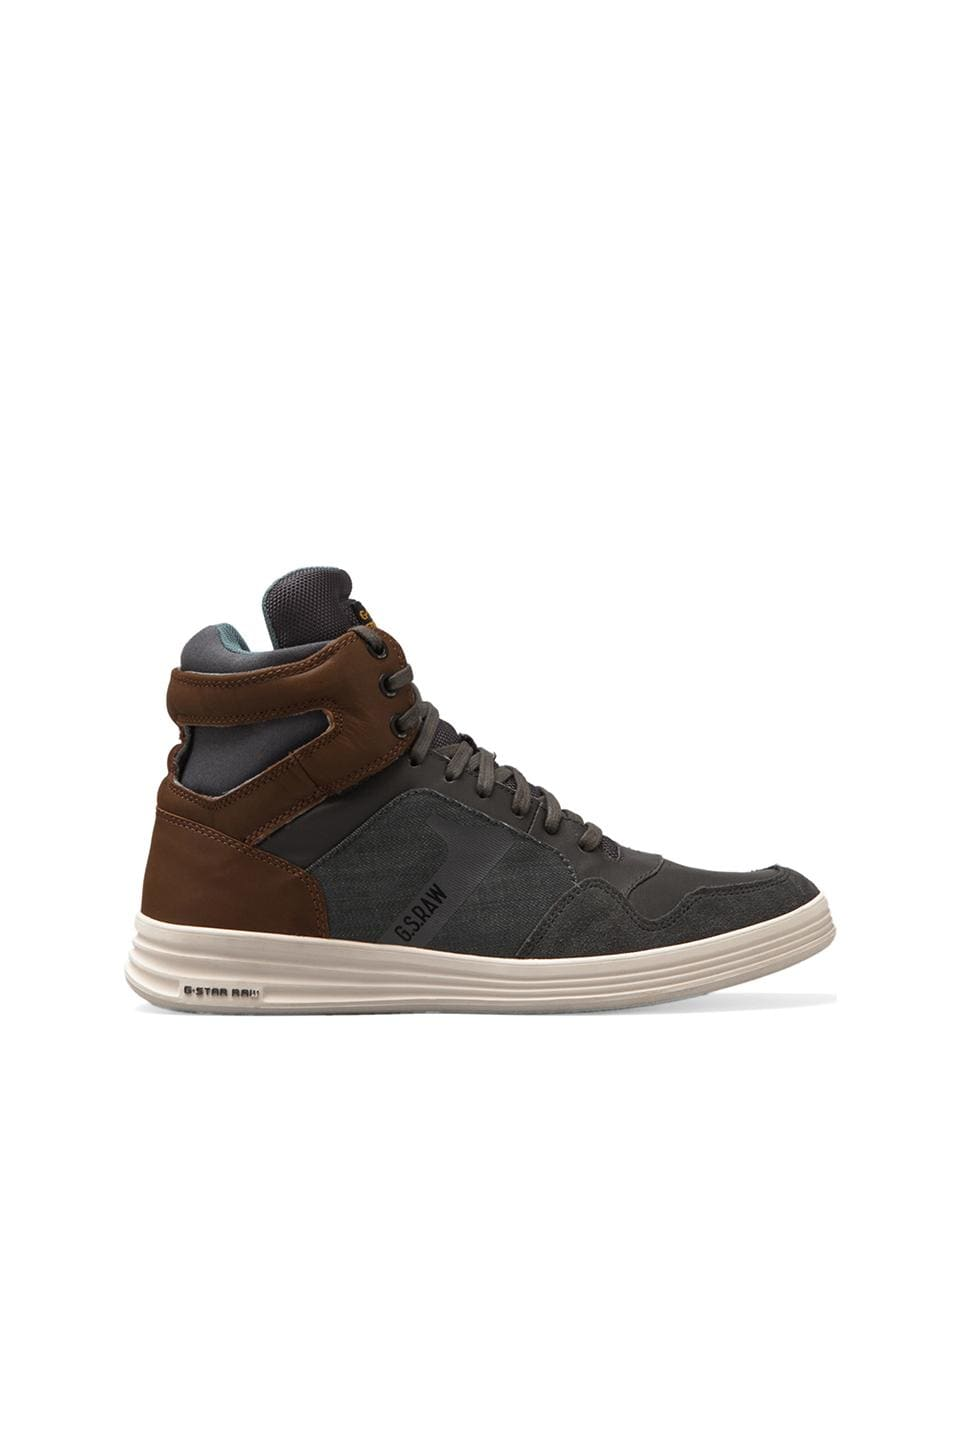 G-Star Futura Outland in Dark Grey Leather & Textile w/ Tan